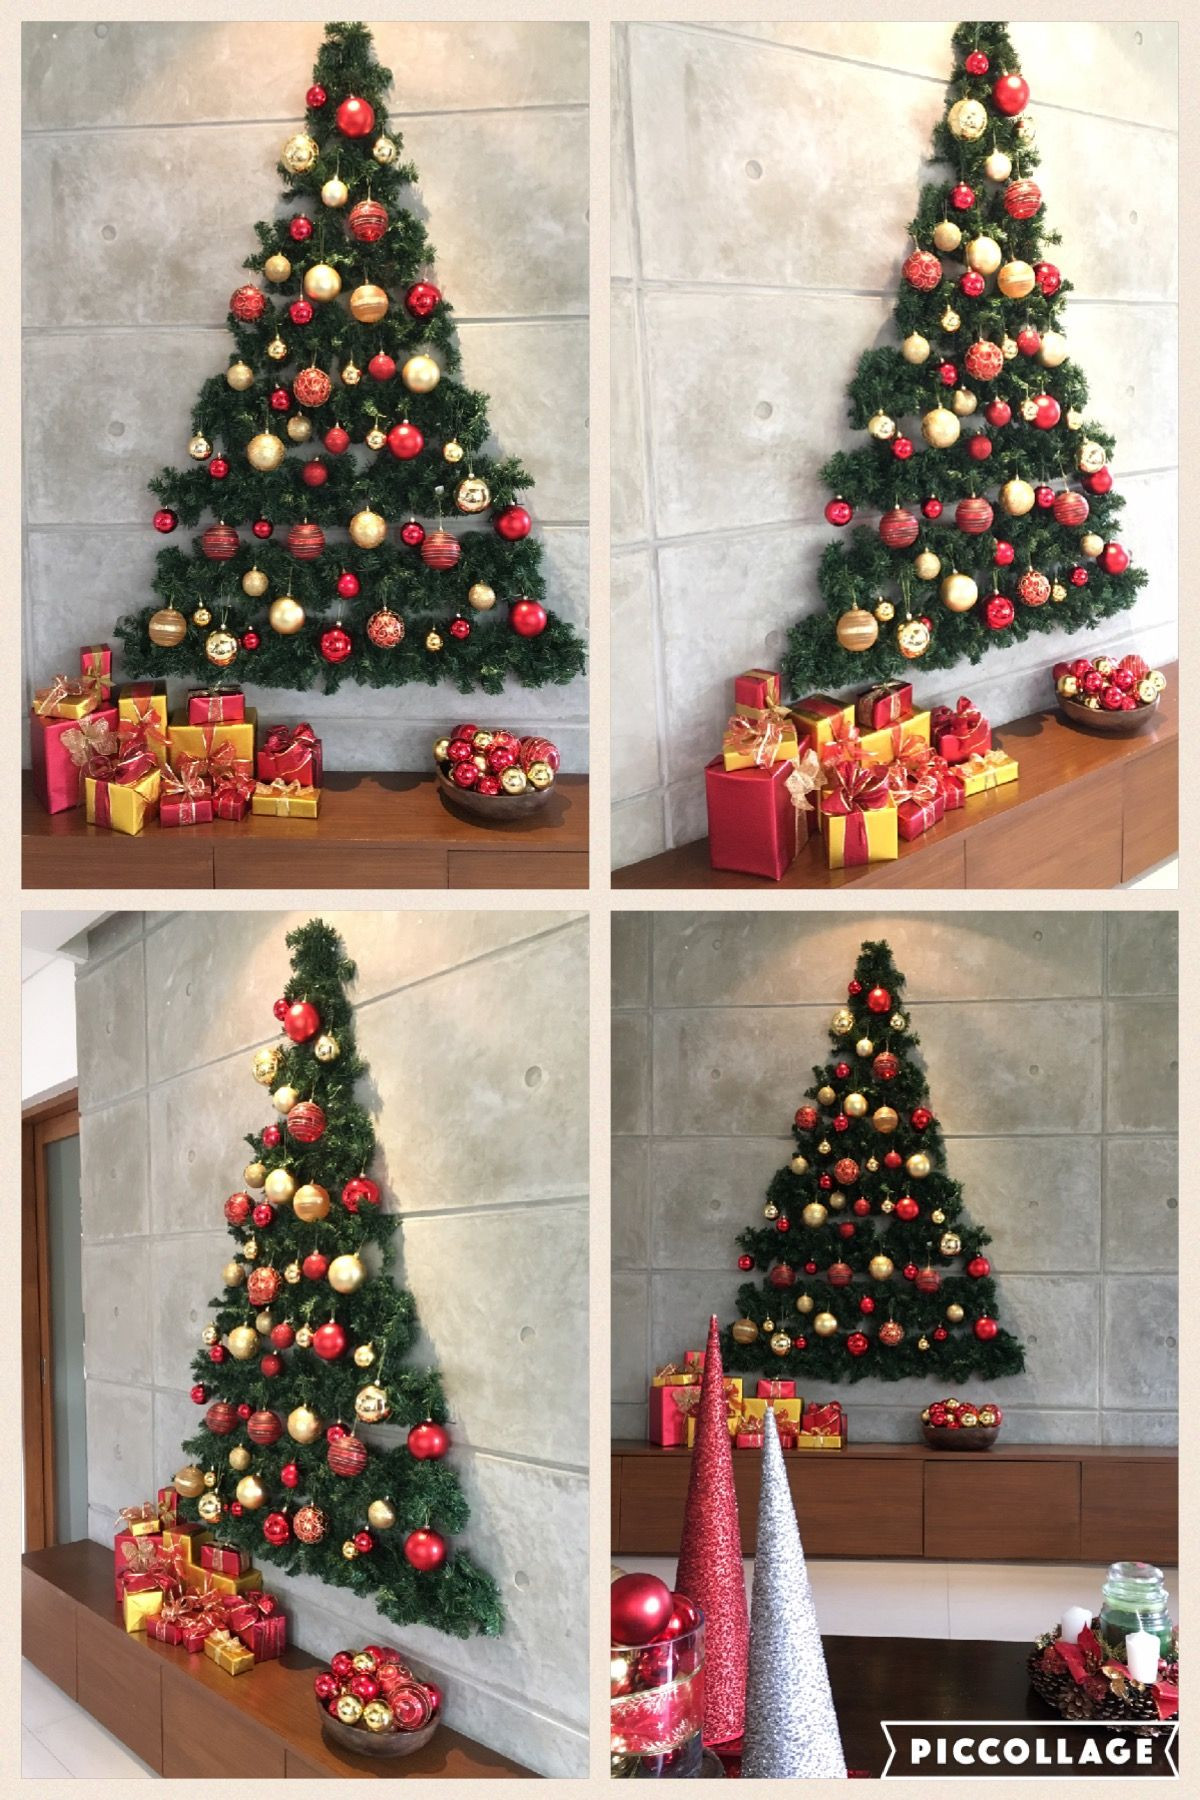 Best ideas about DIY Wall Christmas Trees . Save or Pin Flat Wall Christmas Tree Christmas decor Now.